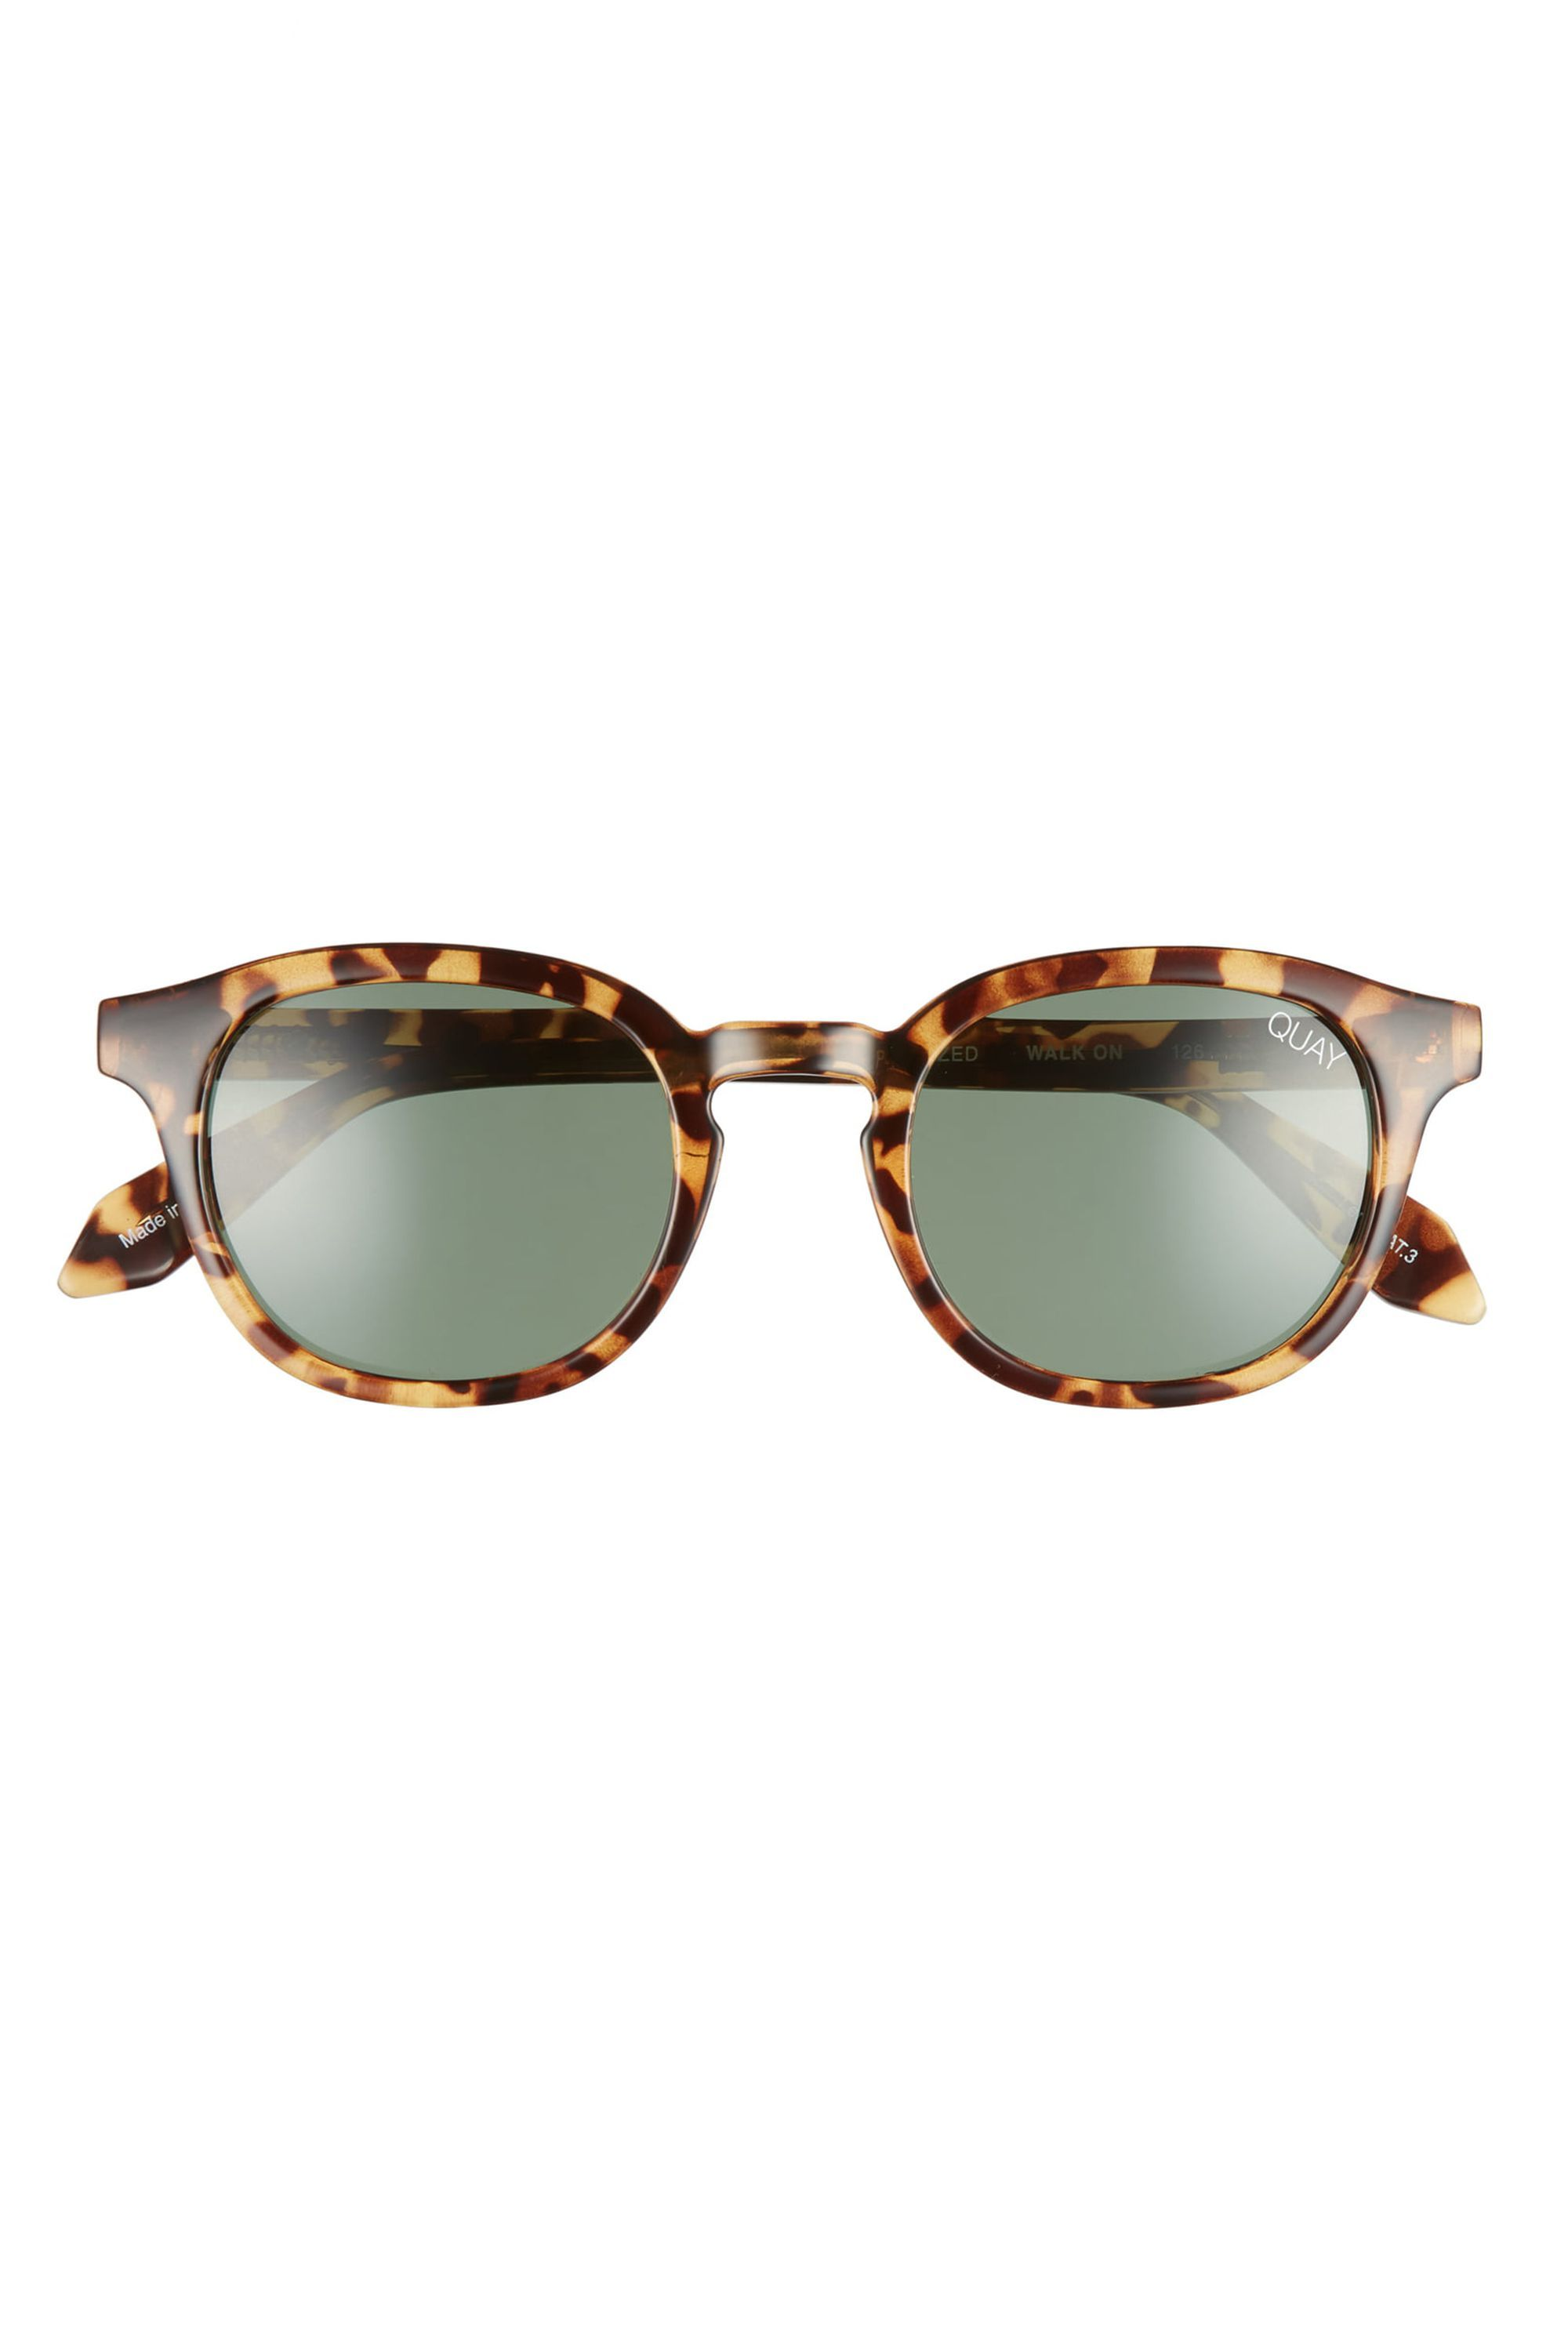 Walk On Polarized Sunglasses Quay Australia nordstrom.com $50.00 SHOP NOW We listed Quay as on of the best sunglass brands ever. Get him a pair, and might we suggest this universally flattering style.